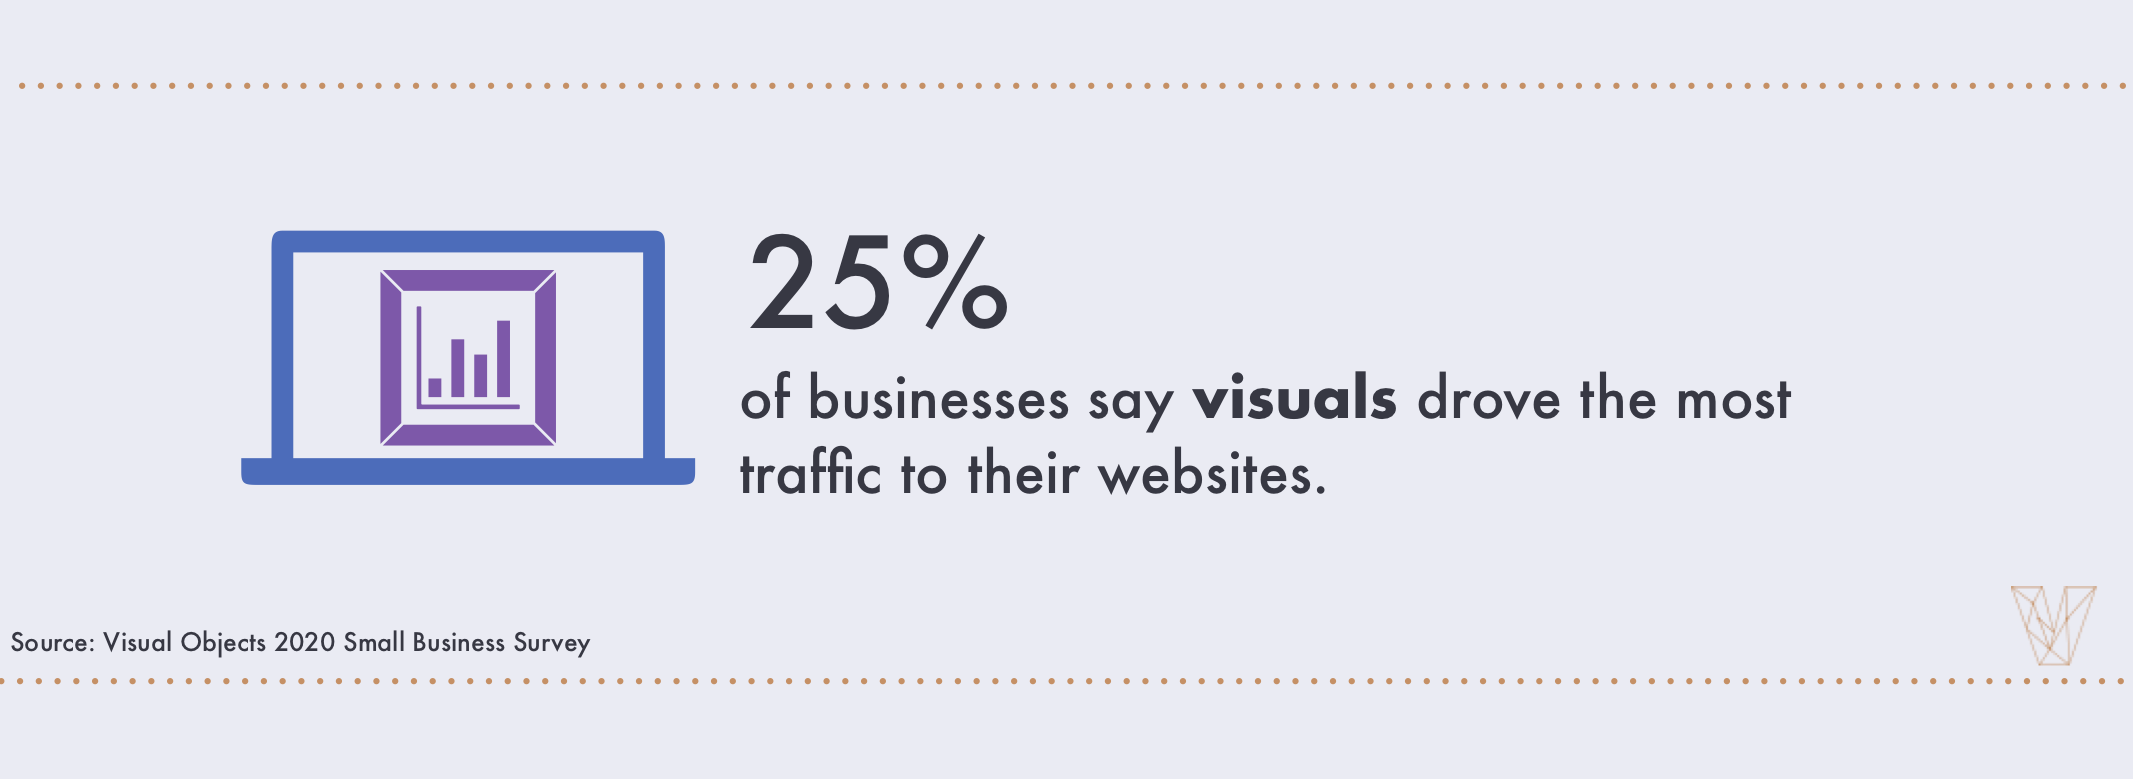 a quarter of businesses (25%) say visuals drove the most traffic to their website